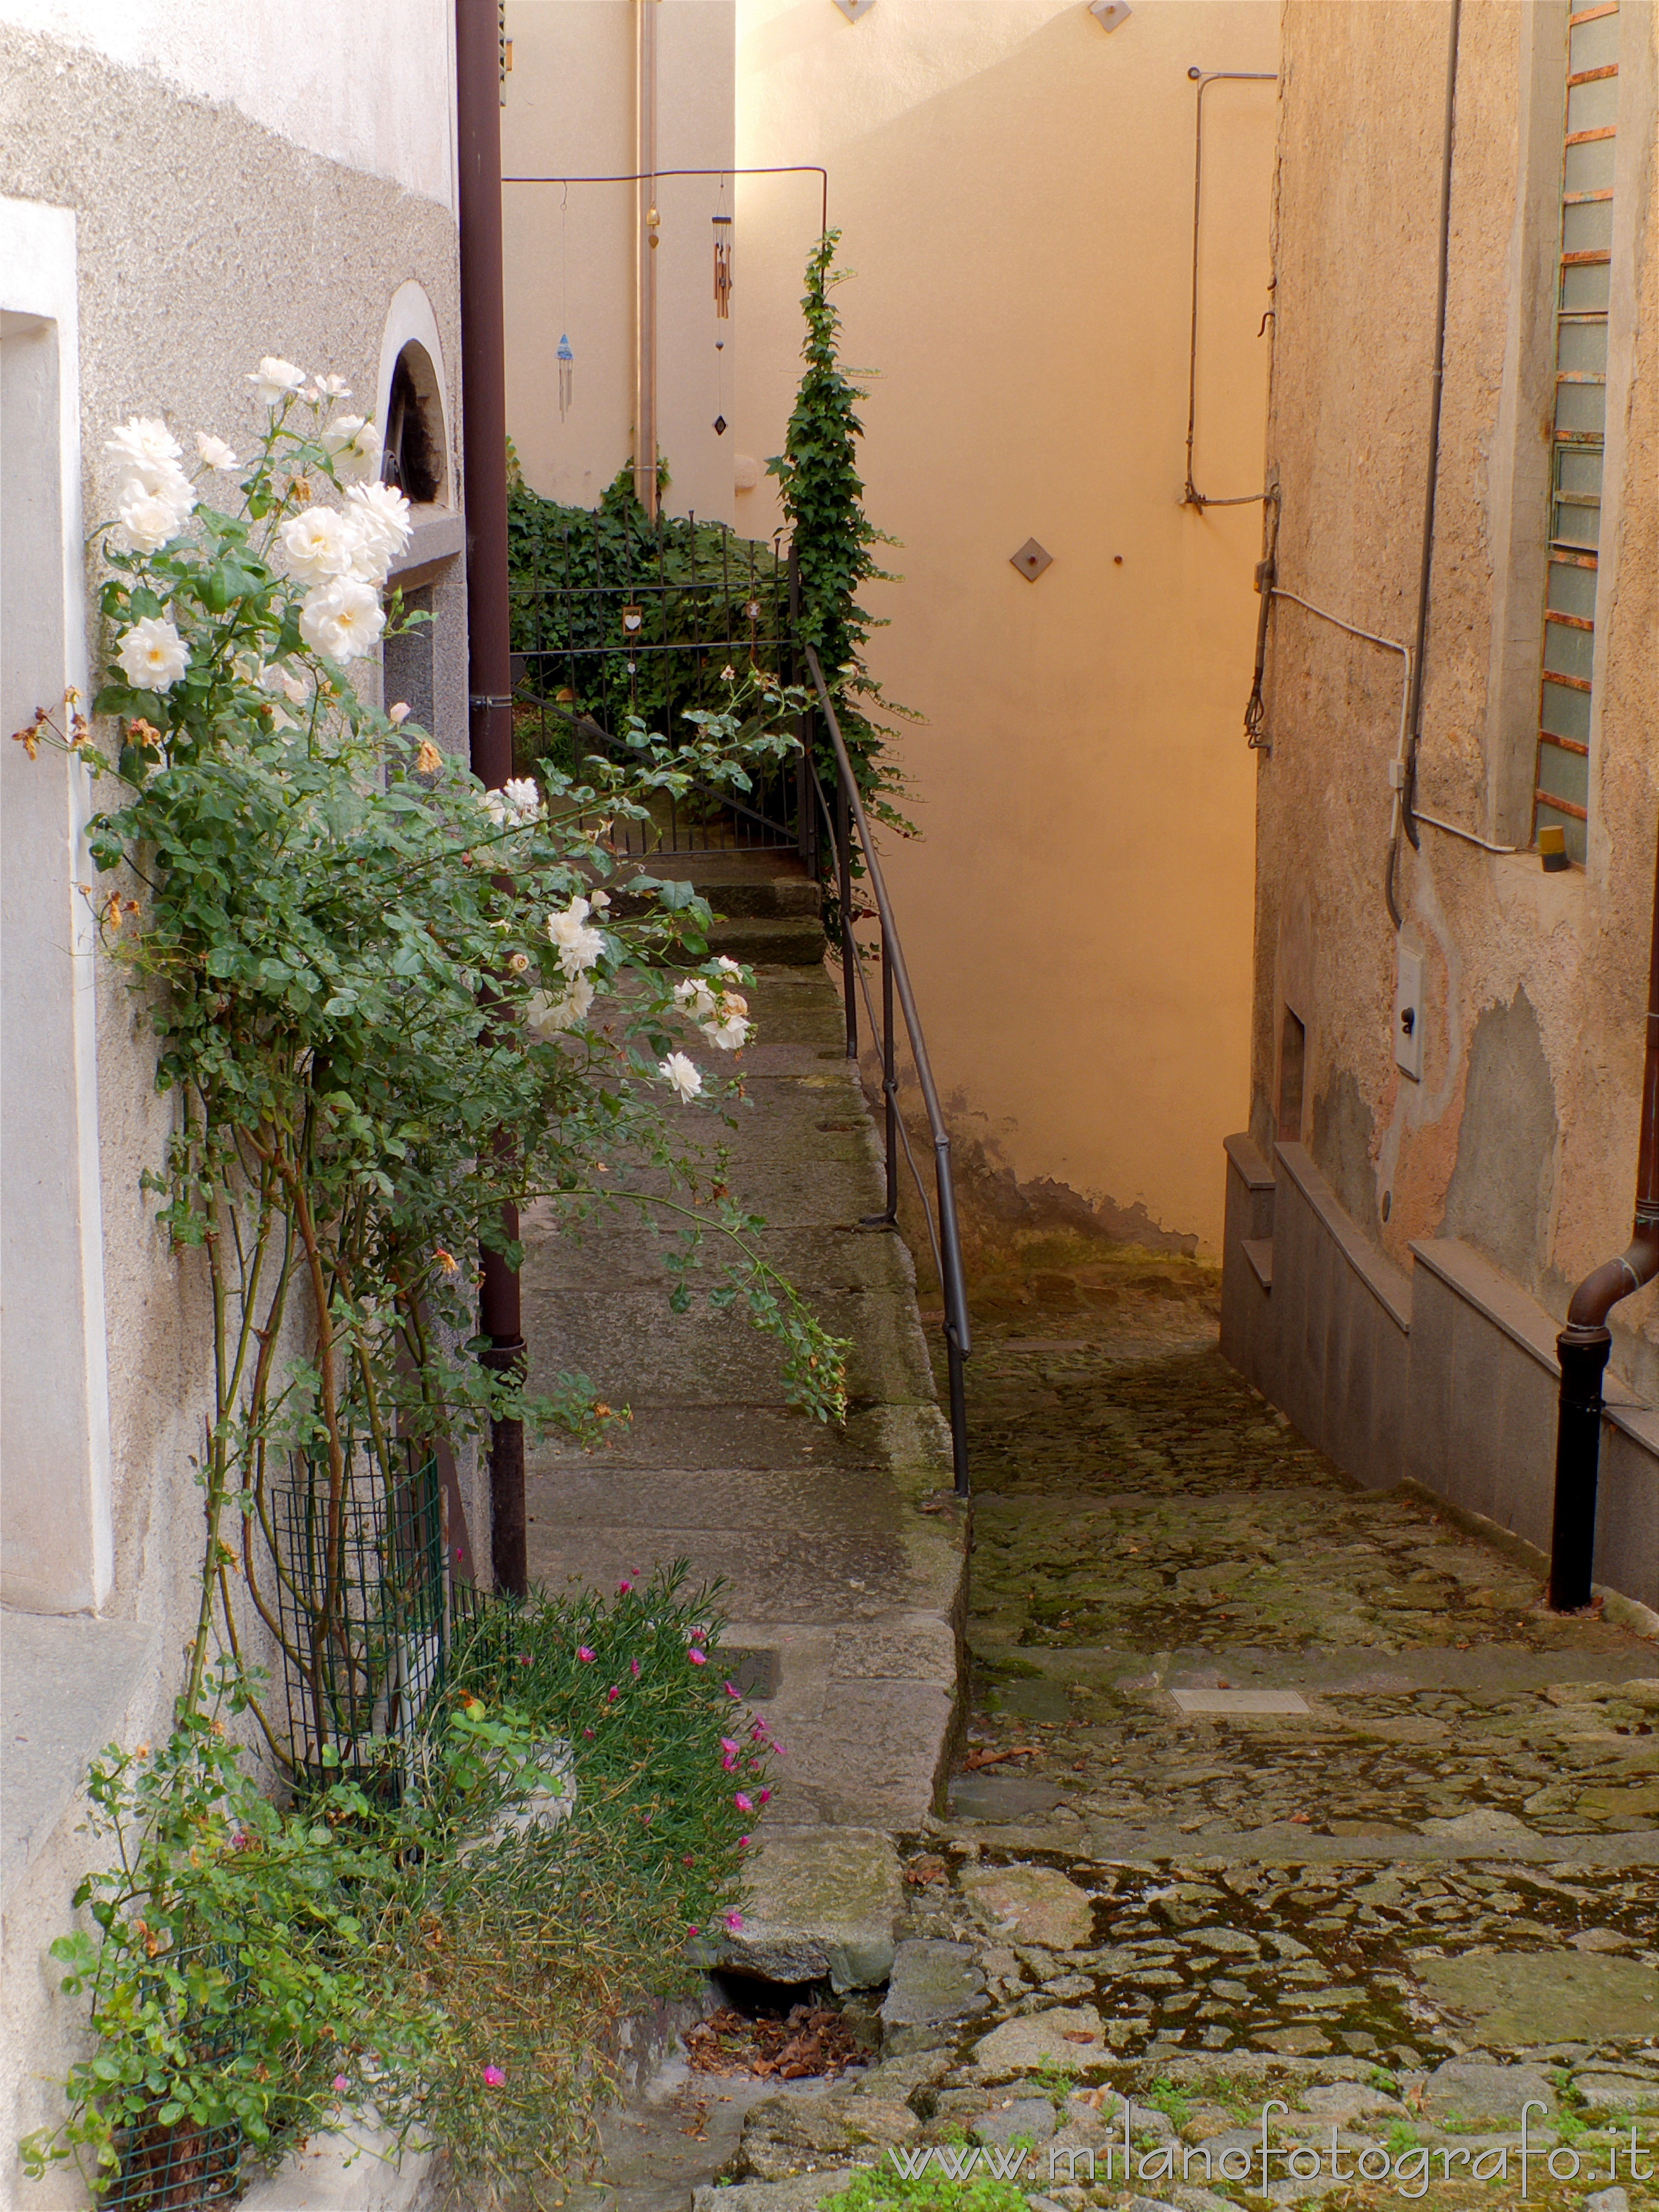 Quittengo fraction of Campiglia Cervo (Biella, Italy): Narrow street with white roses - Quittengo fraction of Campiglia Cervo (Biella, Italy)